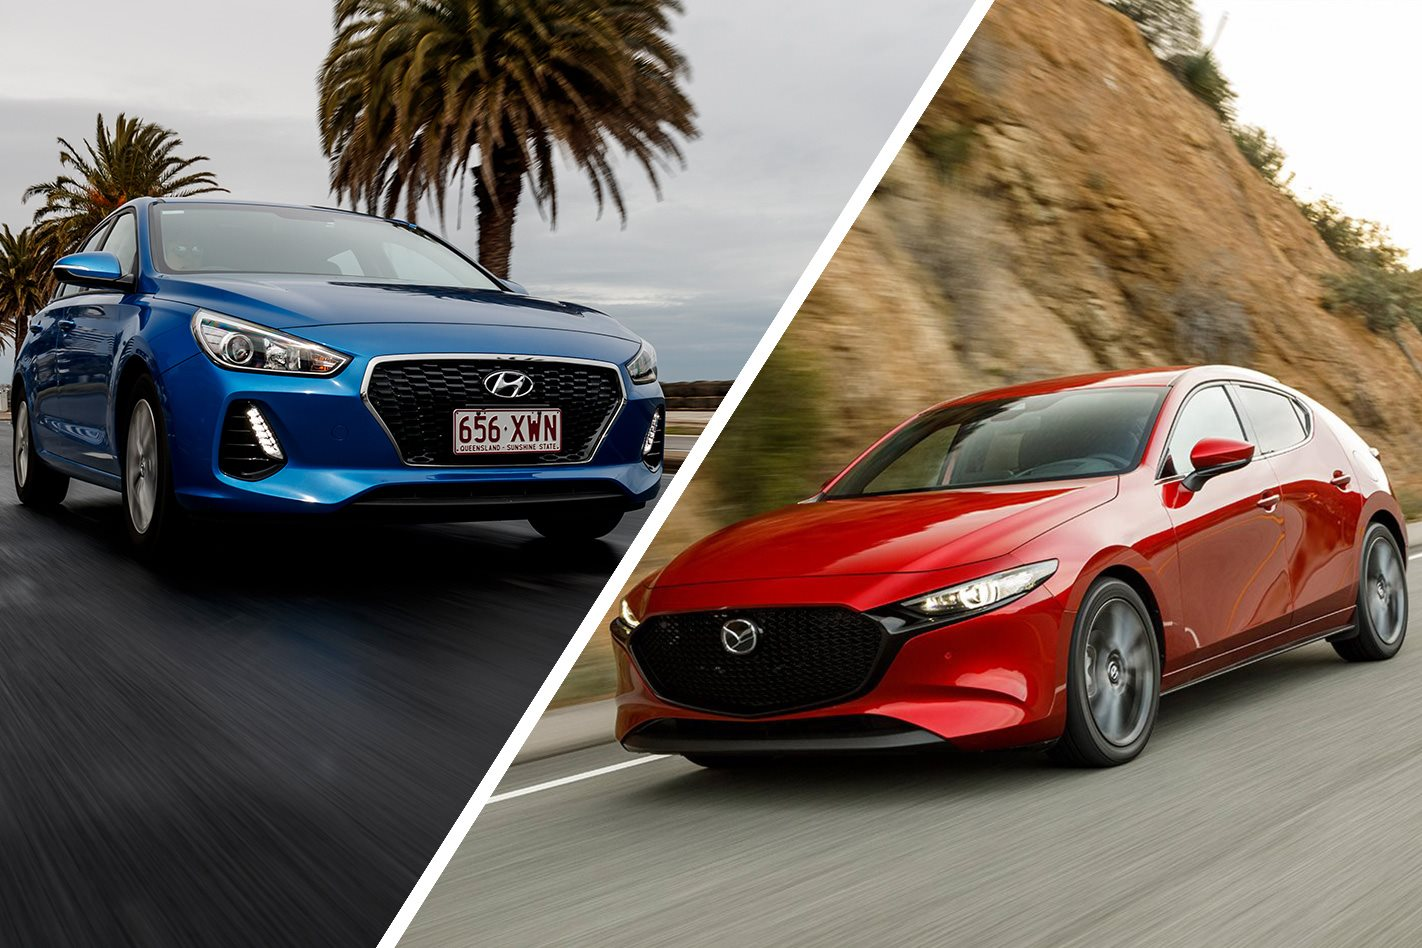 2019 Mazda 3 Vs Hyundai I30 How Do They Stack Up